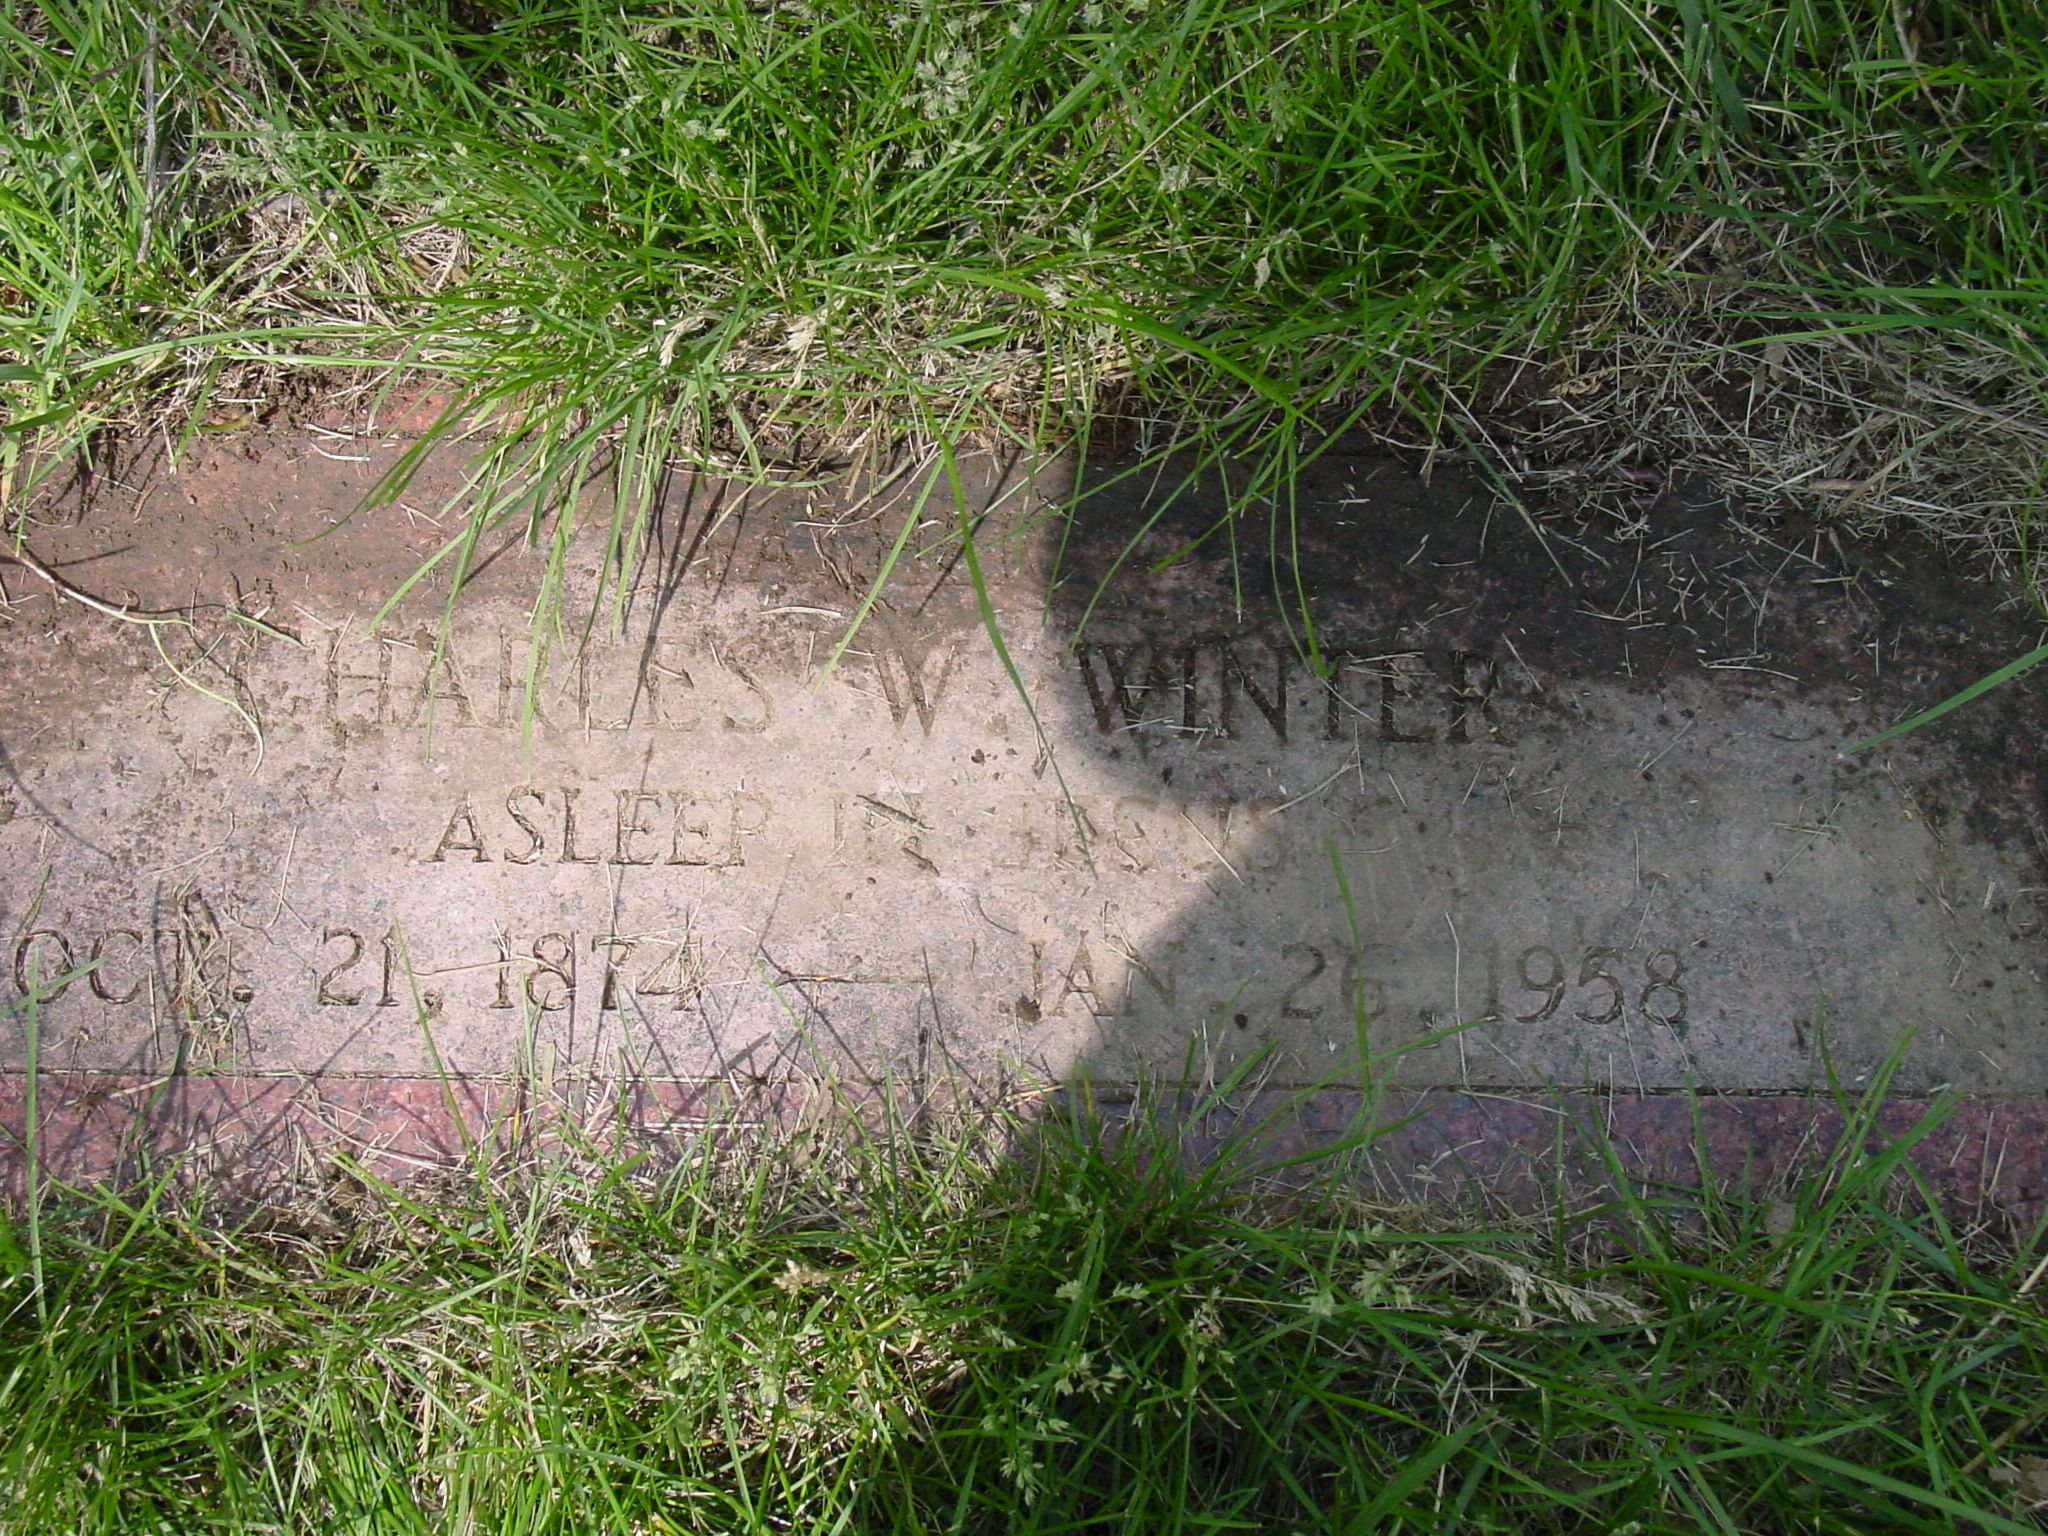 Charles Wesley Winter